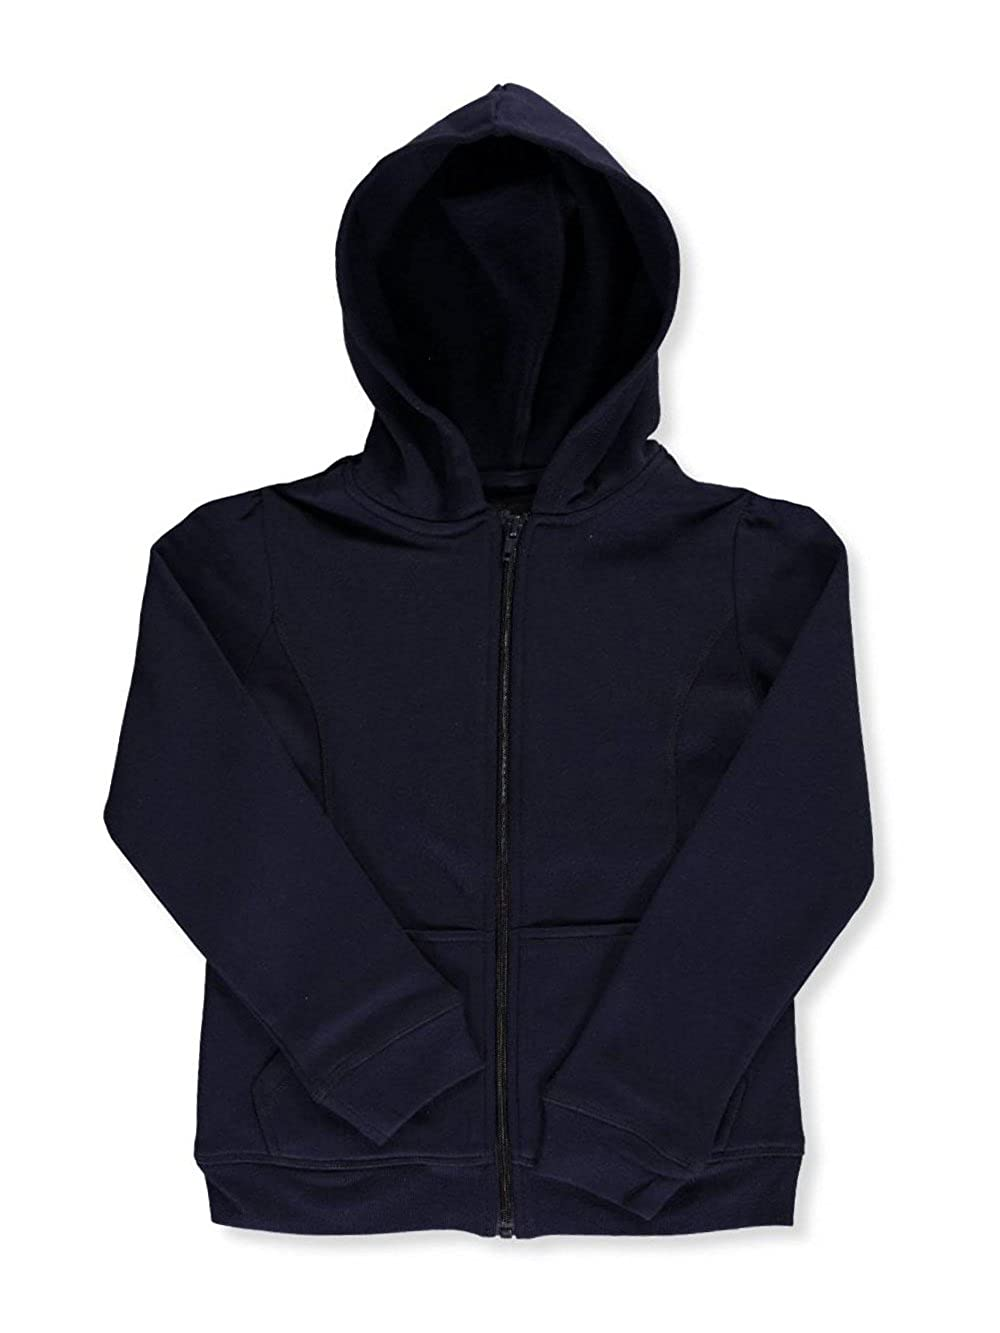 French Toast Little Girls' Fleece Hoodie - Navy, 6X